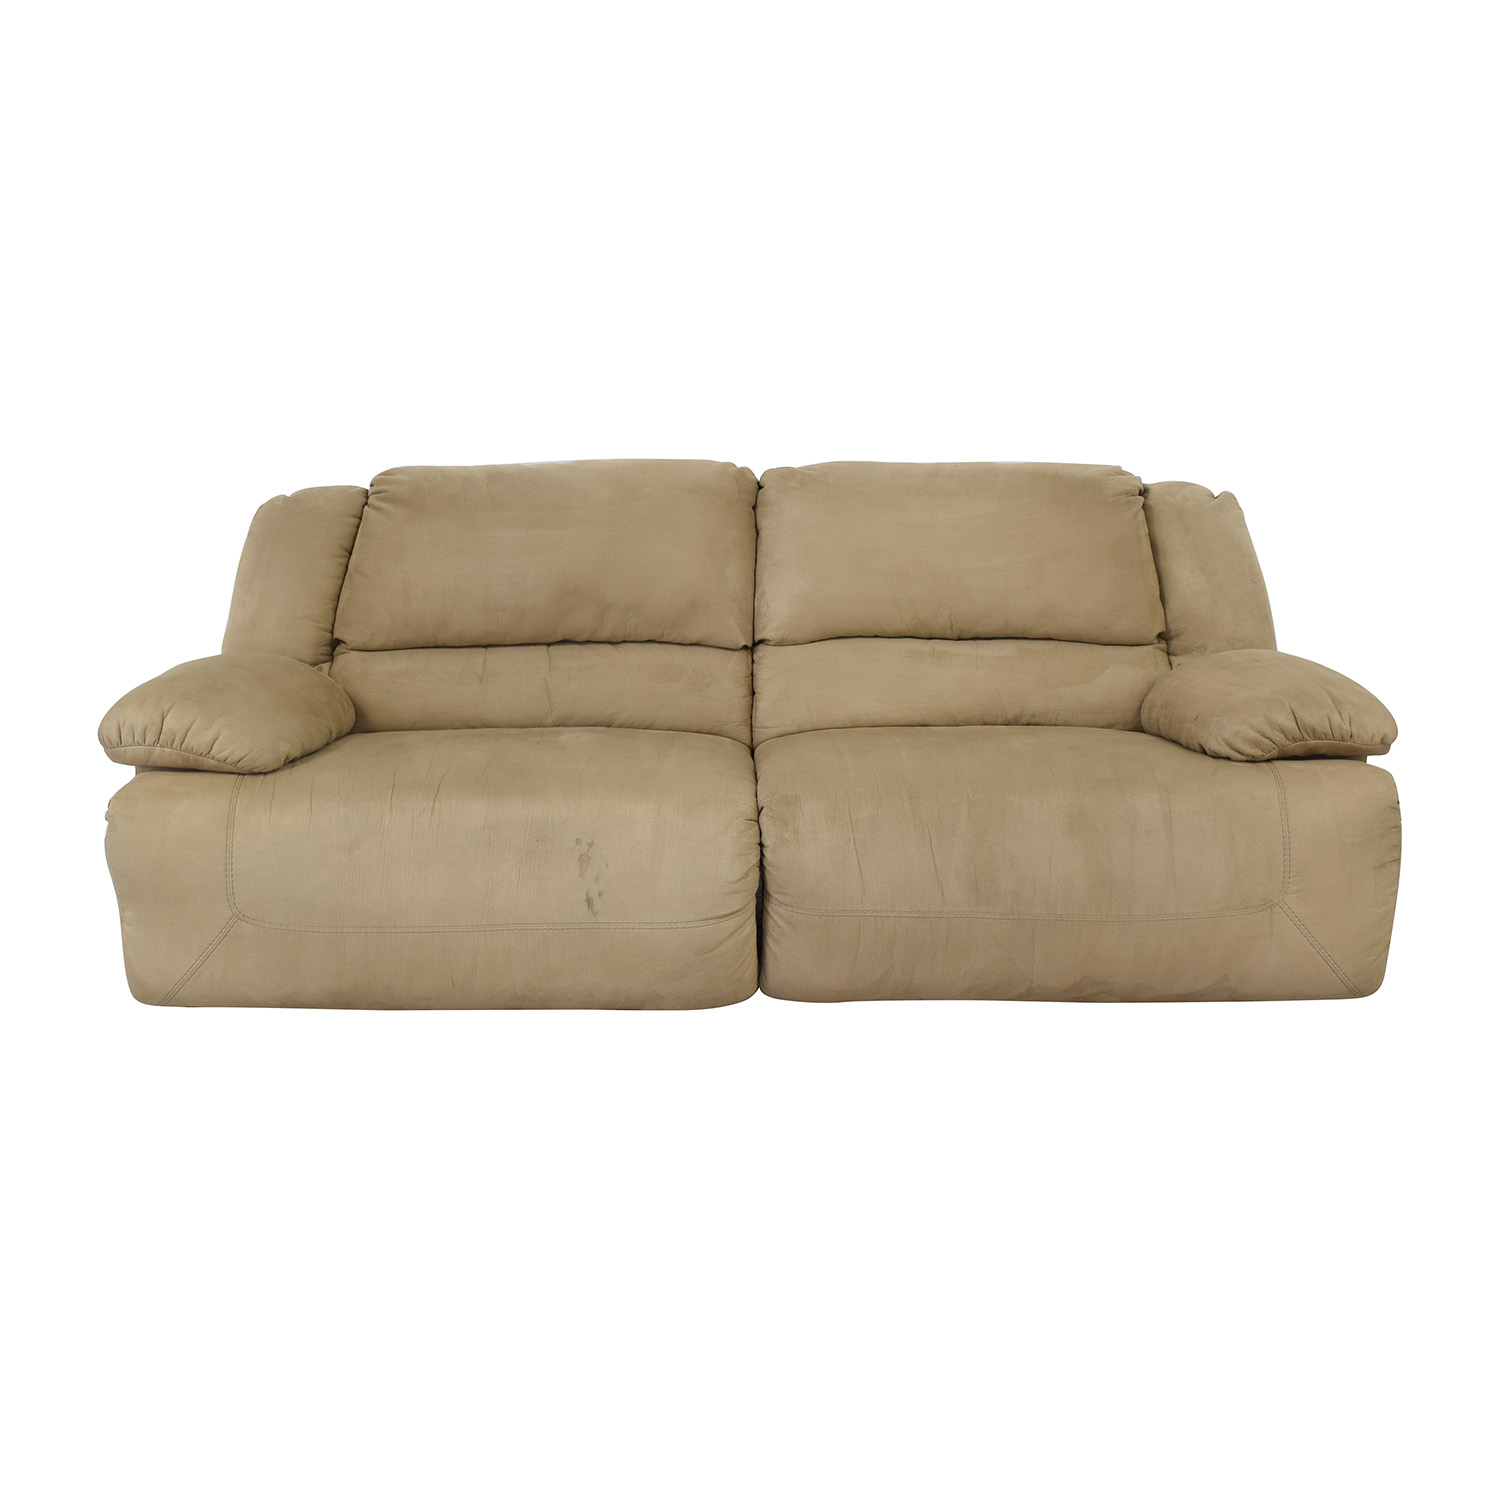 shop Ashley Furniture Ashley Furniture Hogan Reclining Sofa online